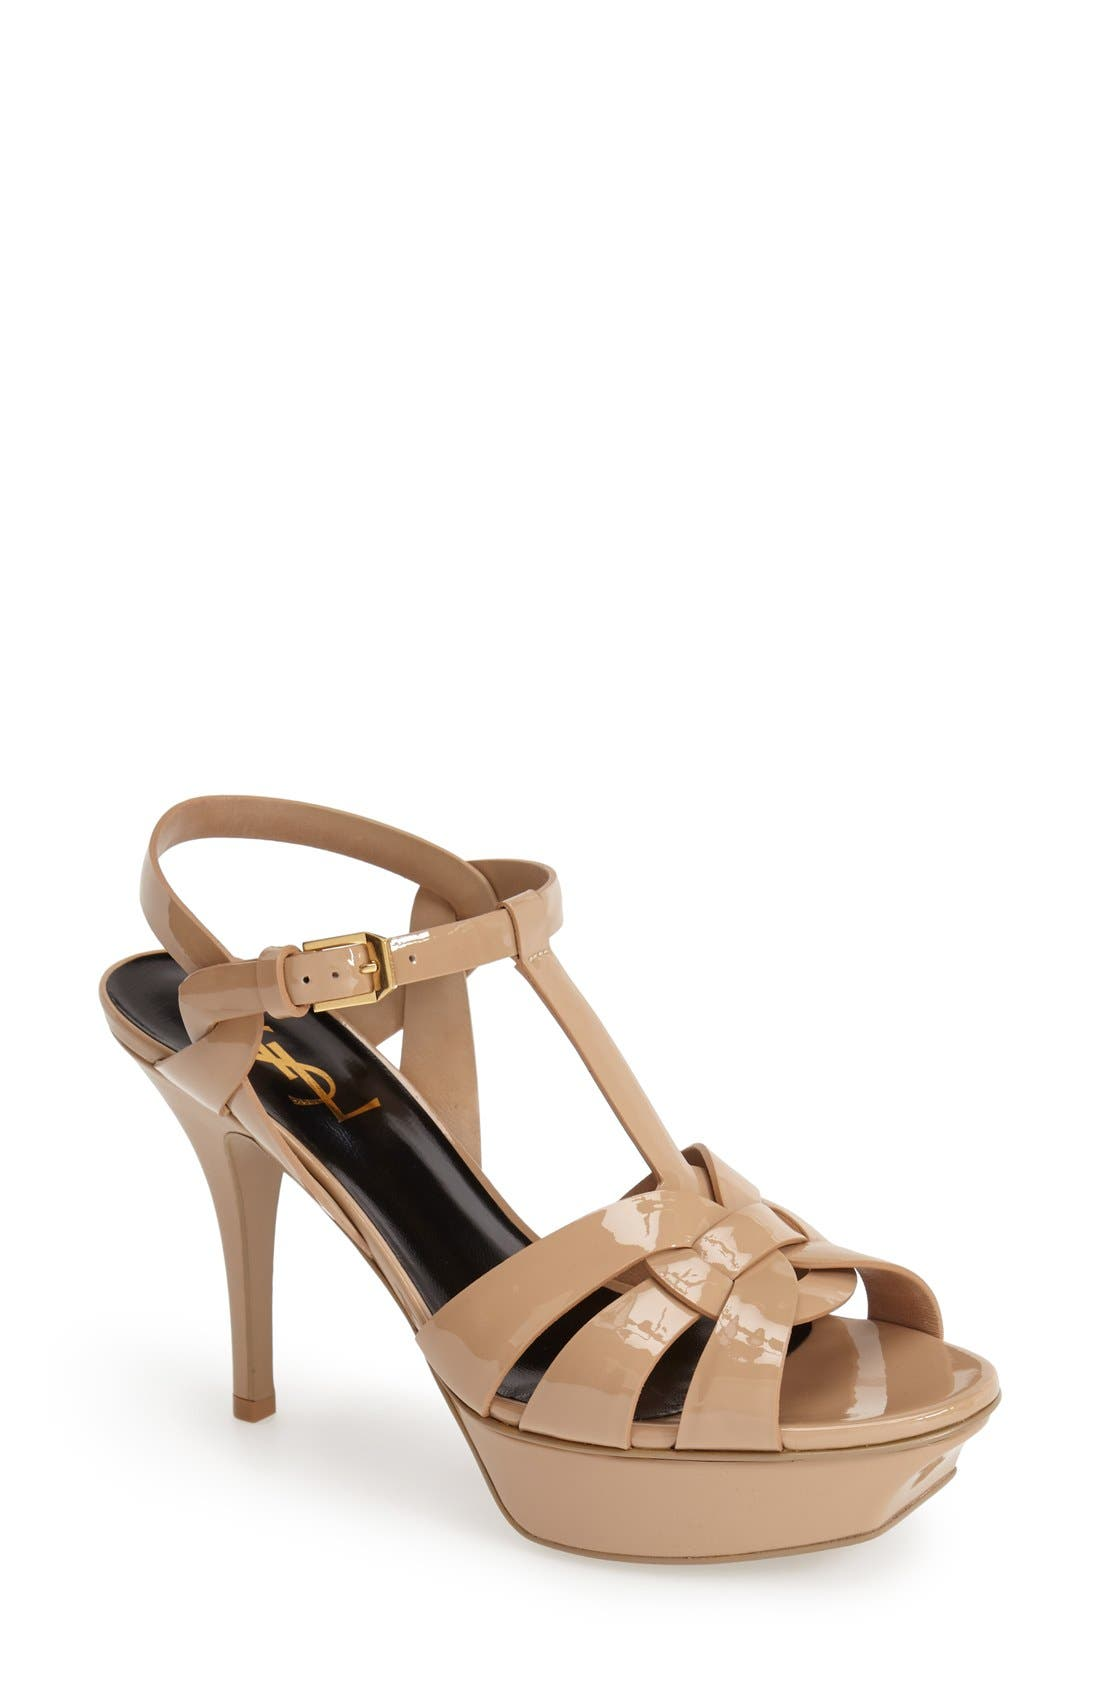 Alternate Image 1 Selected - Saint Laurent 'Tribute' T-Strap Sandal (Women)